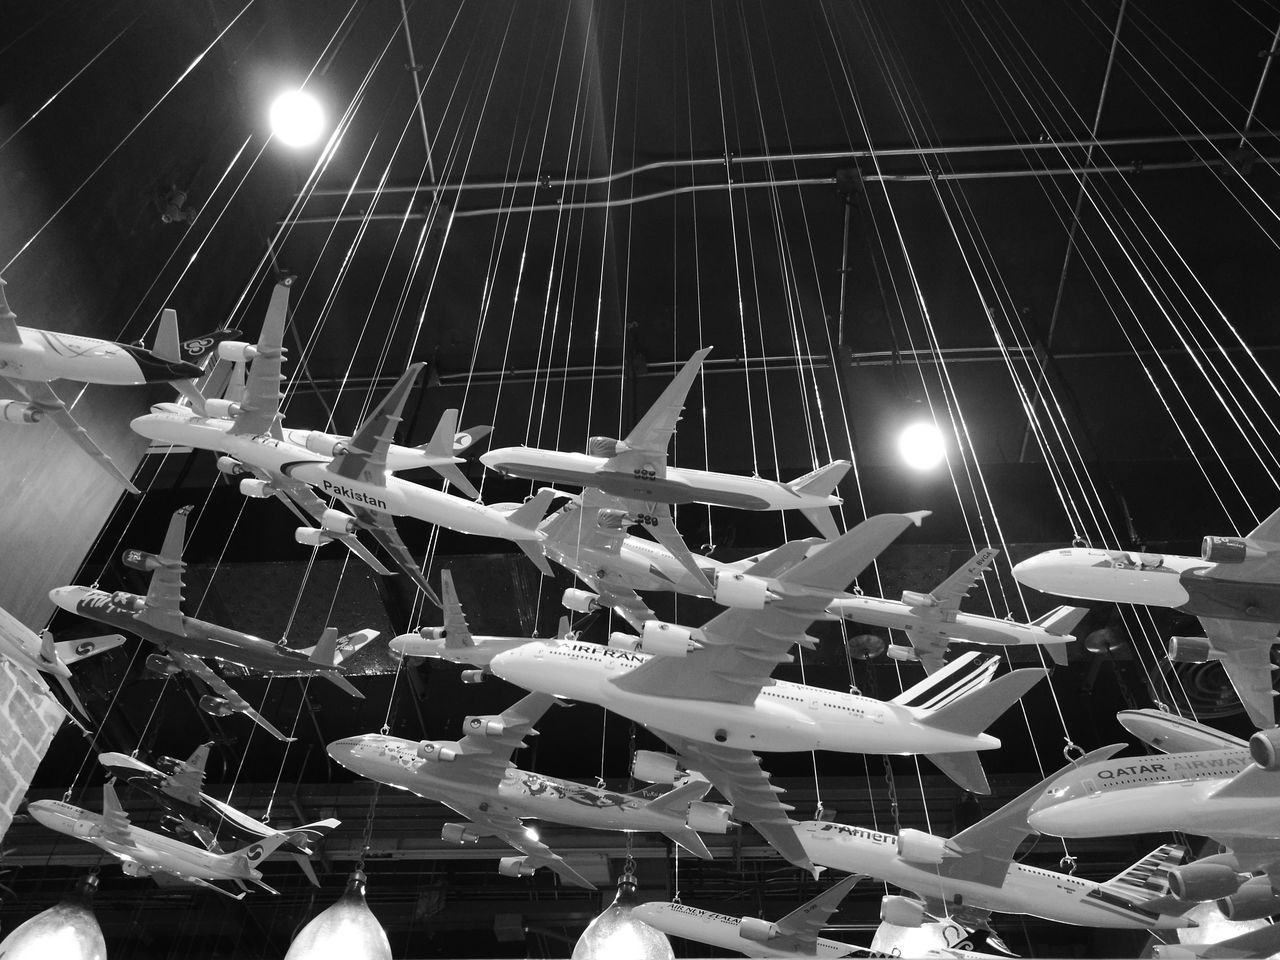 Airplane mode Airplane Toys Huawei P9 Plus Black & White Built Structure Architecture Streetphotography Photography Mall Flying